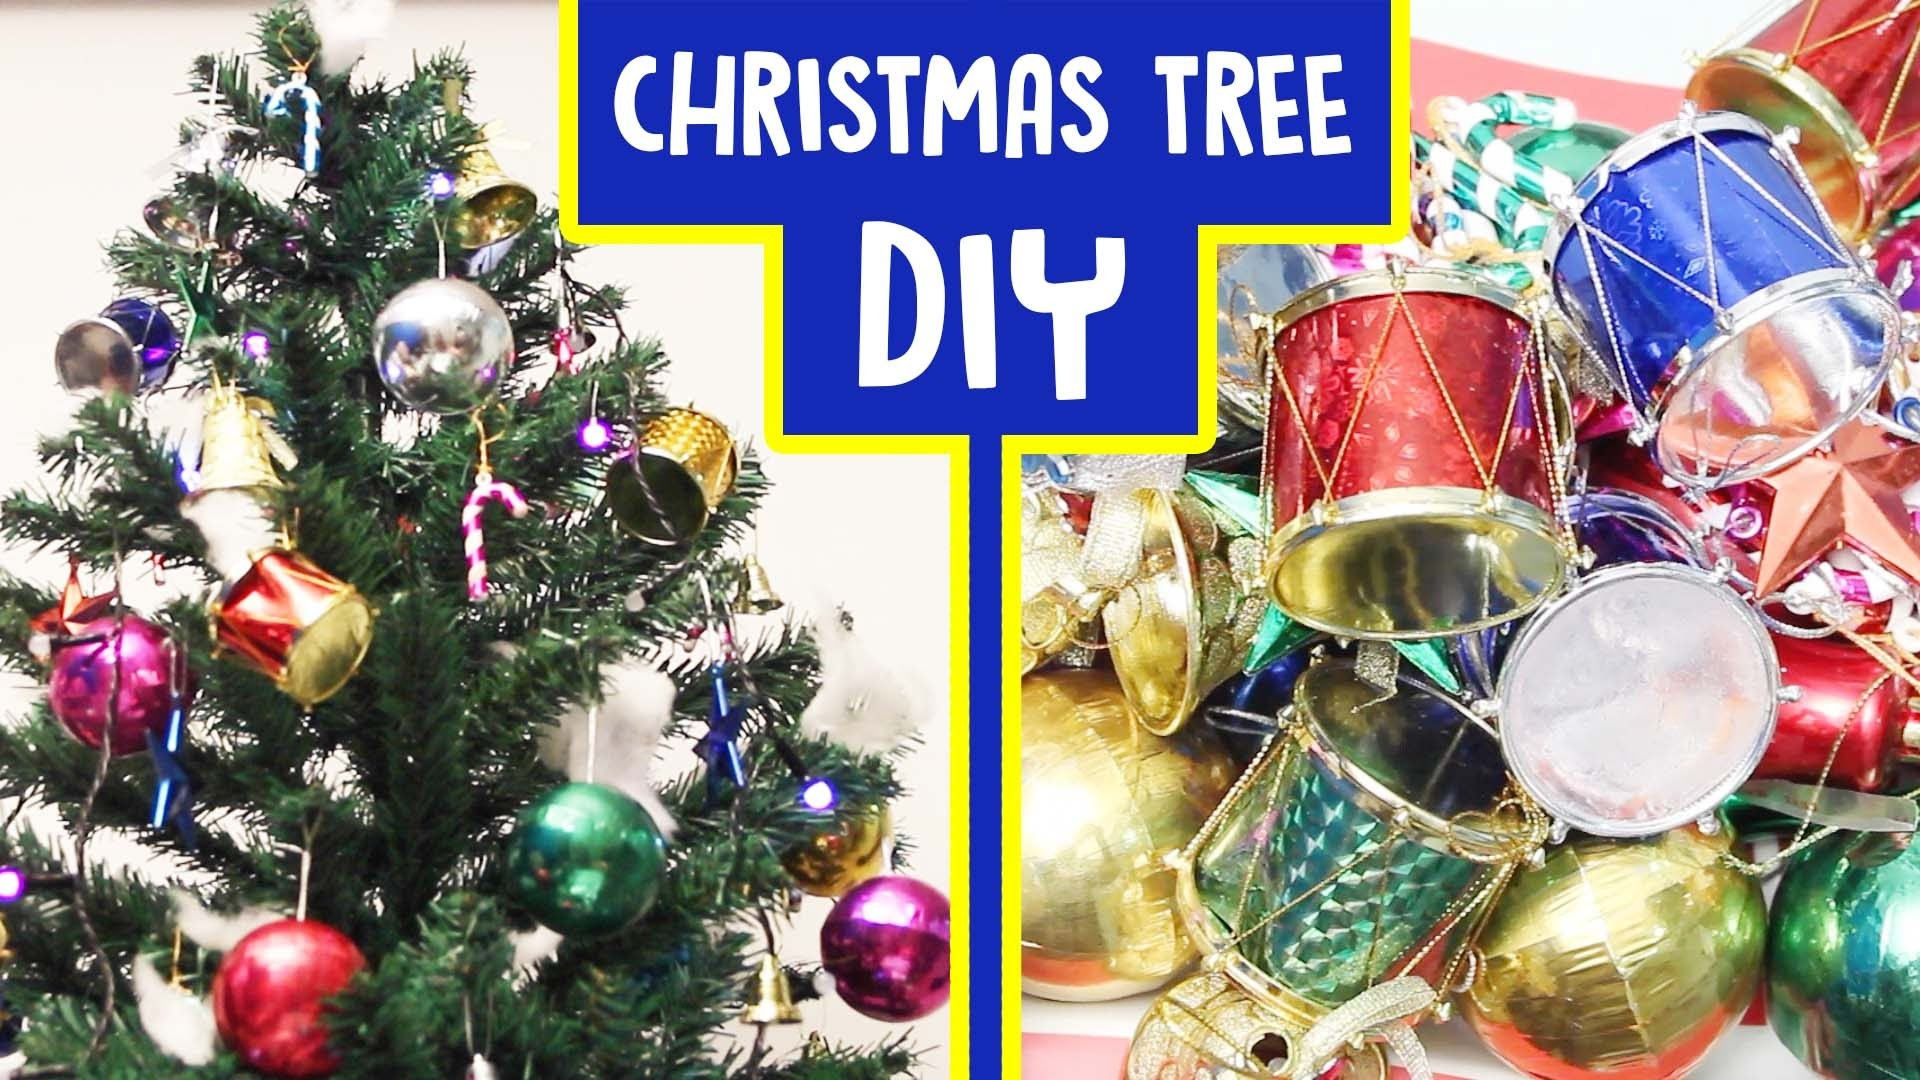 How To Decorate Christmas Tree | Christmas Tree Decoration Ideas | DIY Deco Tutorial | Cool Kids